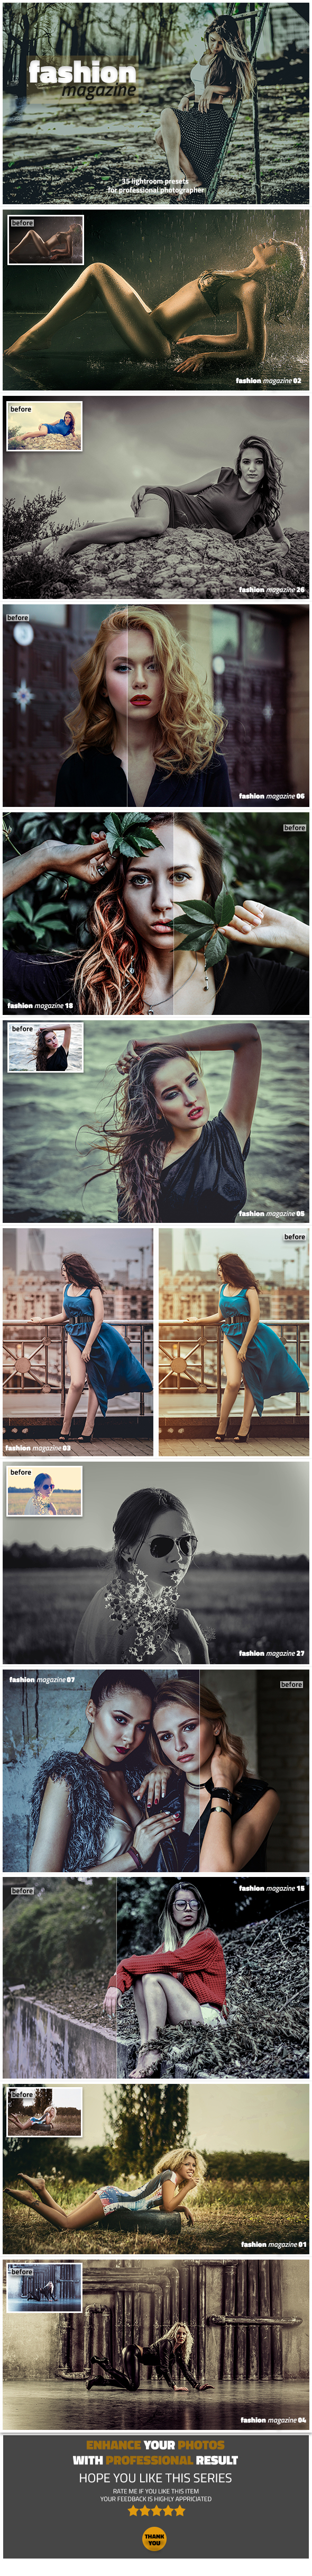 Fashion Magazine Lightroom Presets - Lightroom Presets Add-ons